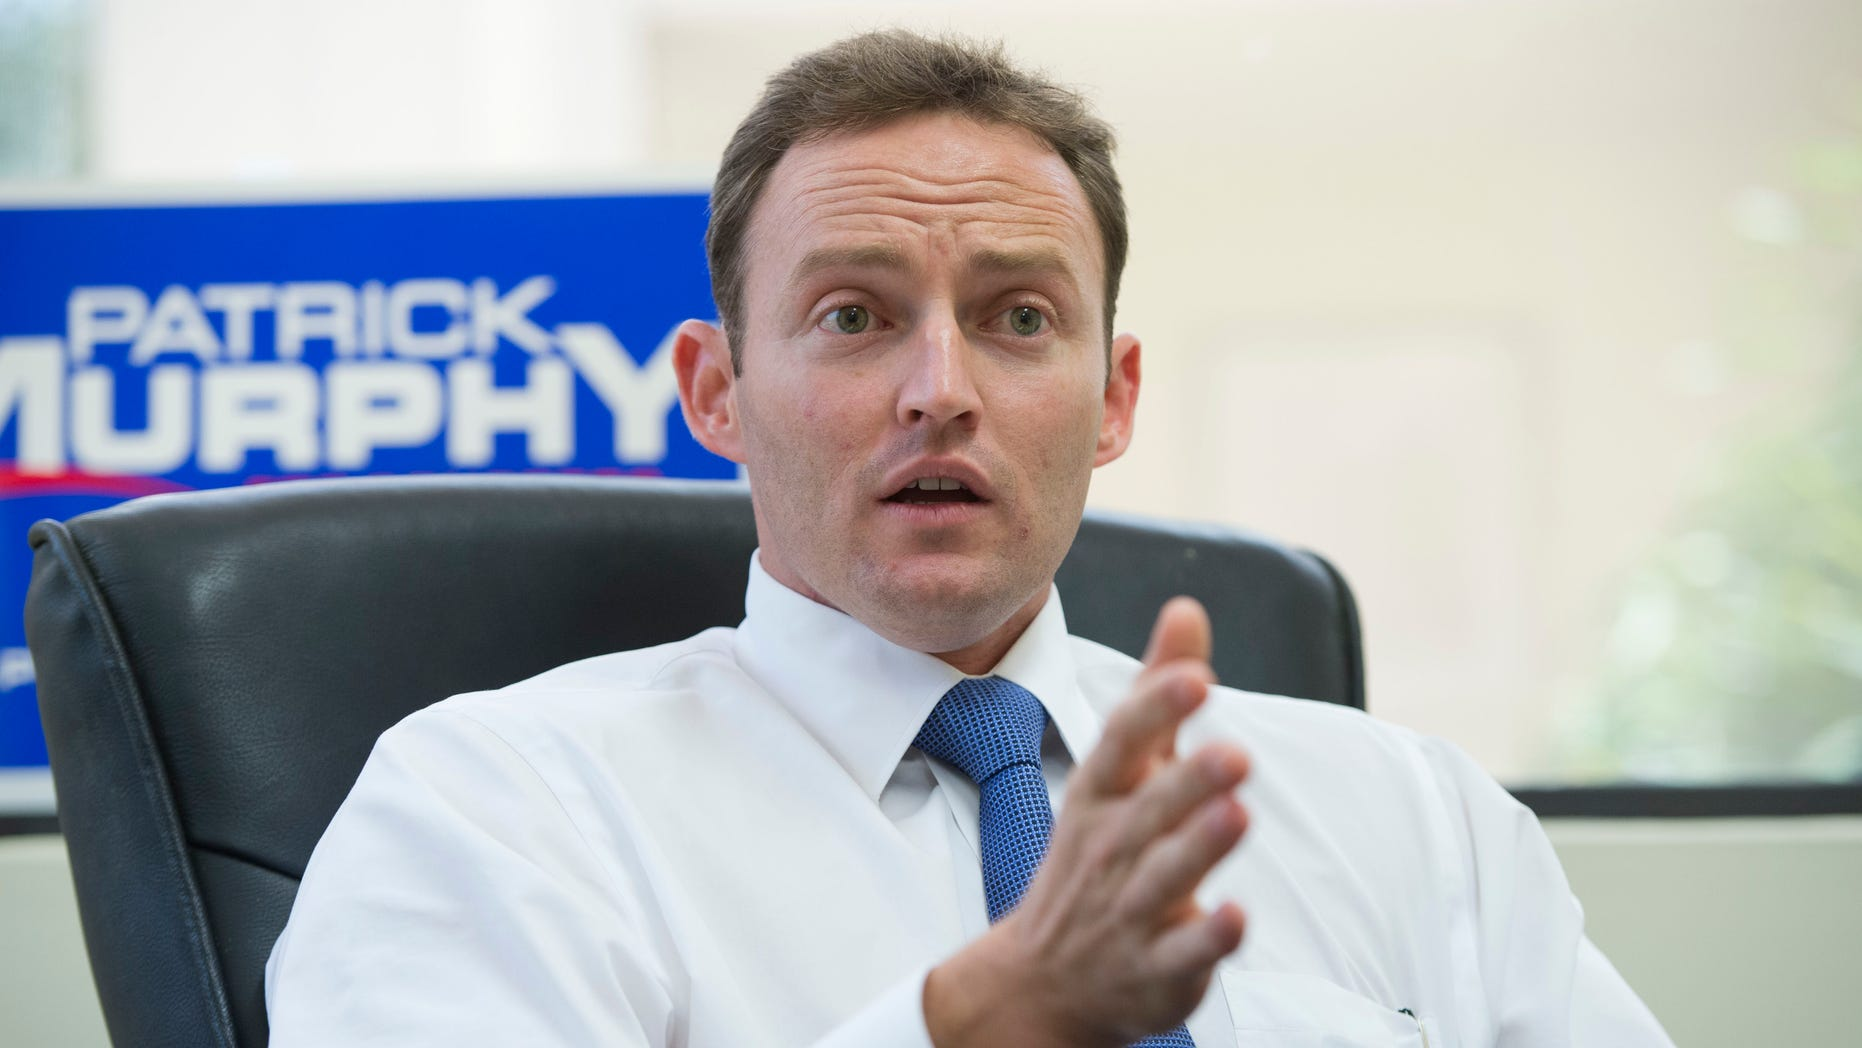 UNITED STATES - AUGUST 23:  Patrick Murphy, democratic candidate in Floridaââ¬â¢s 18th District, is interviewed by Roll Call in his Palm Beach Gardens, Fla., office.  Murphy is running against Rep. Allen West, R-Fla.(Photo By Tom Williams/CQ Roll Call)